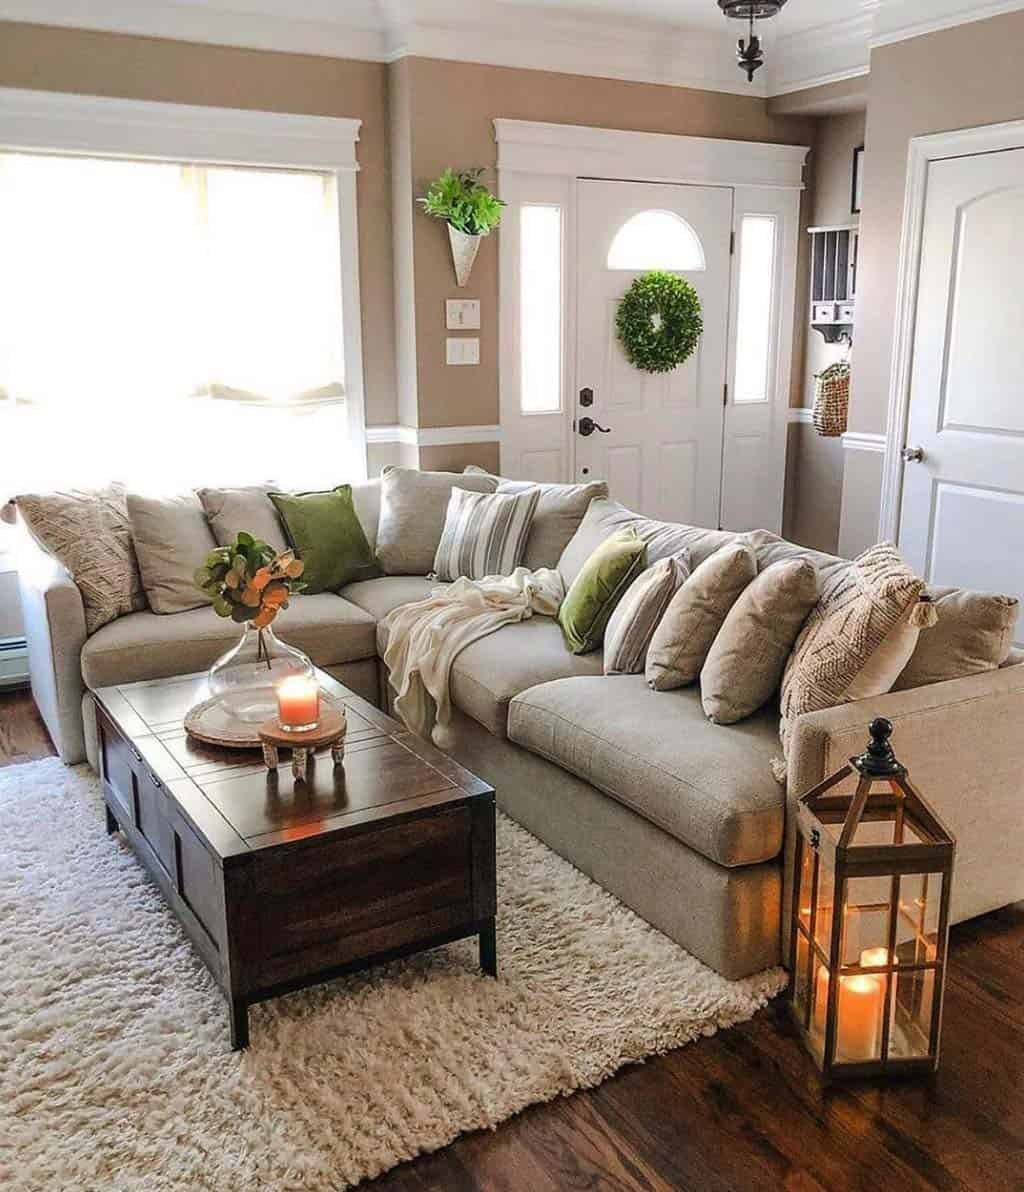 35 Cozy Home Interior Design Ideas: 33 Fantastic Ideas To Cozy Your Home With Farmhouse Fall Decor